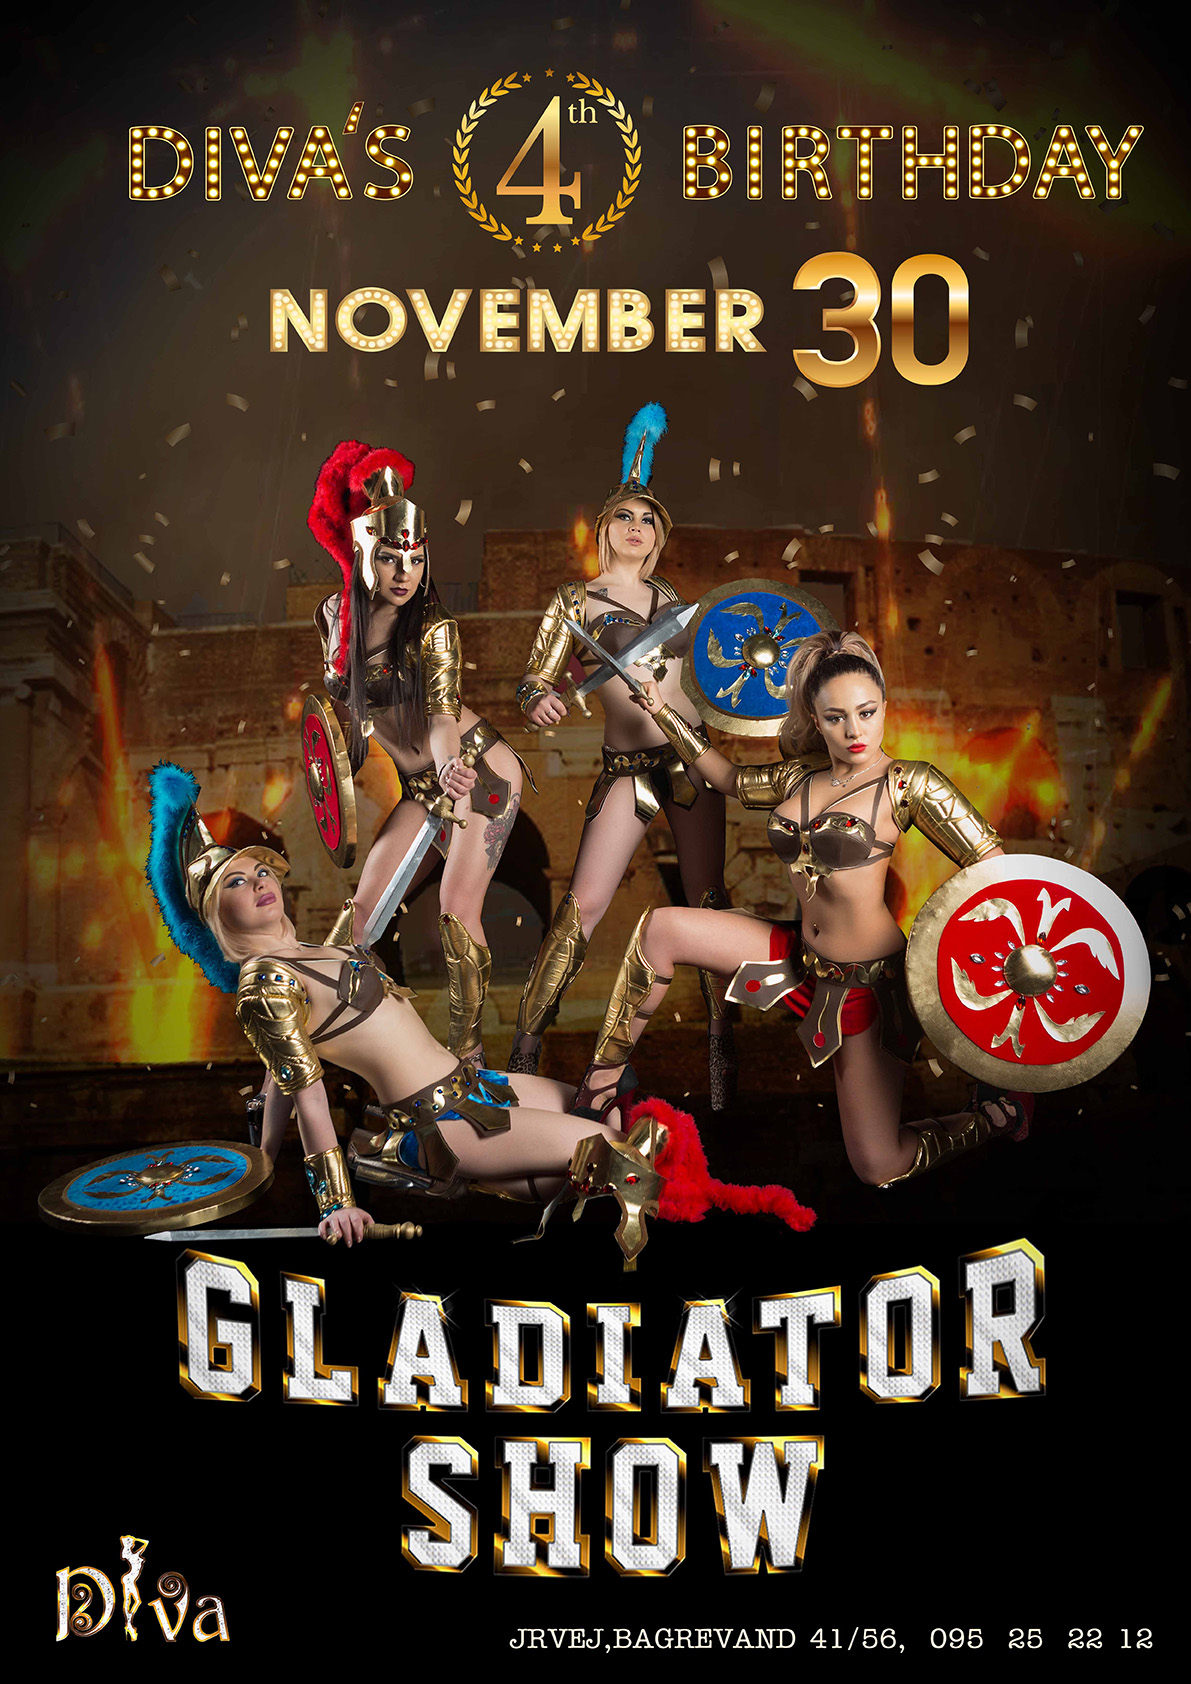 diva night club gladiator b-day 4